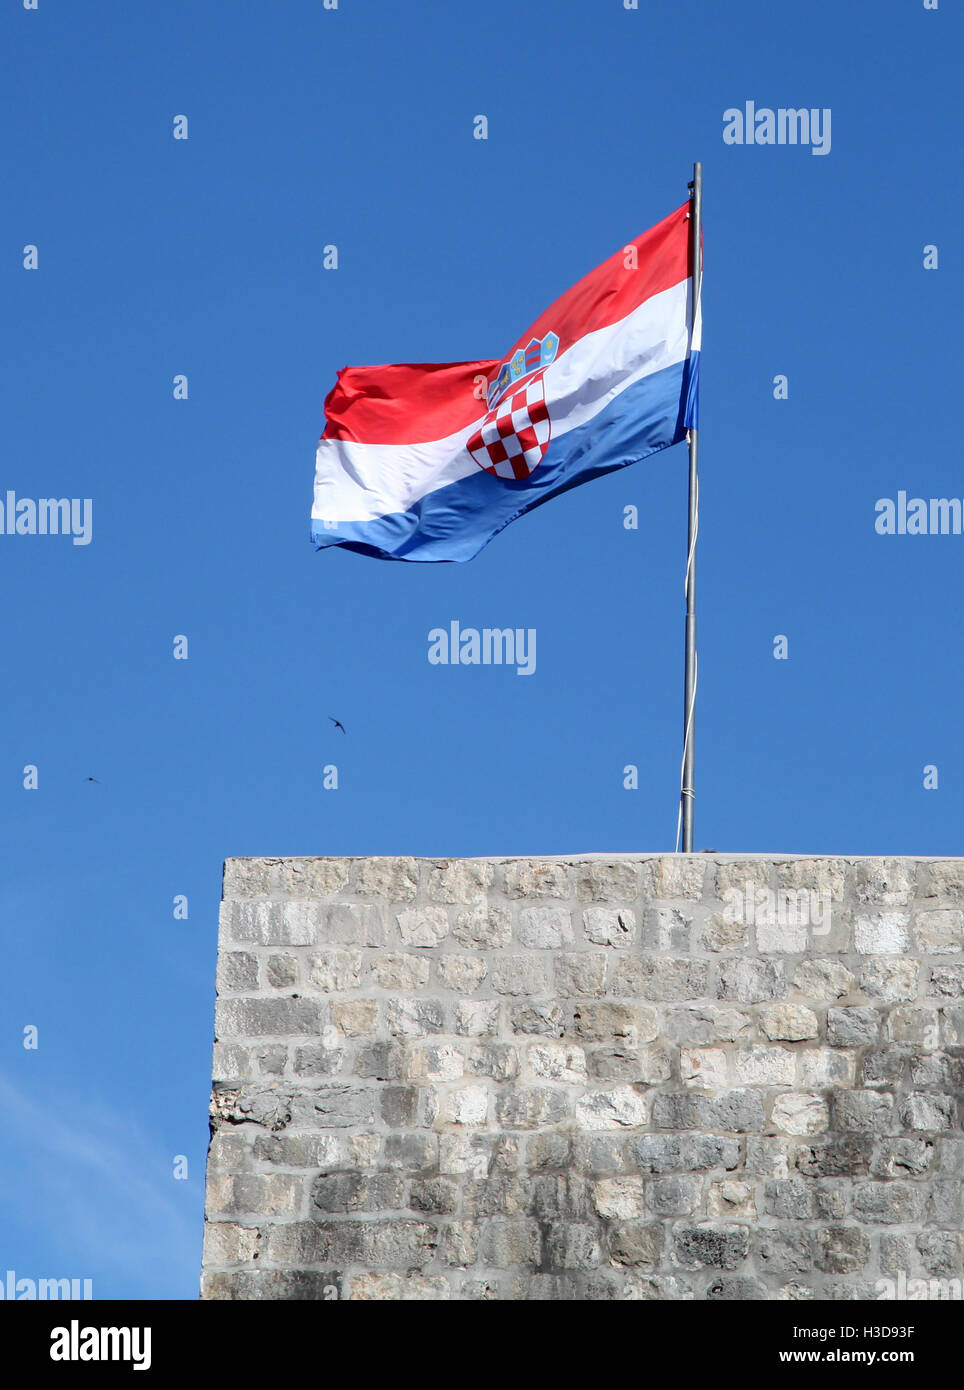 Croatia flag on pole at a tower - Stock Image